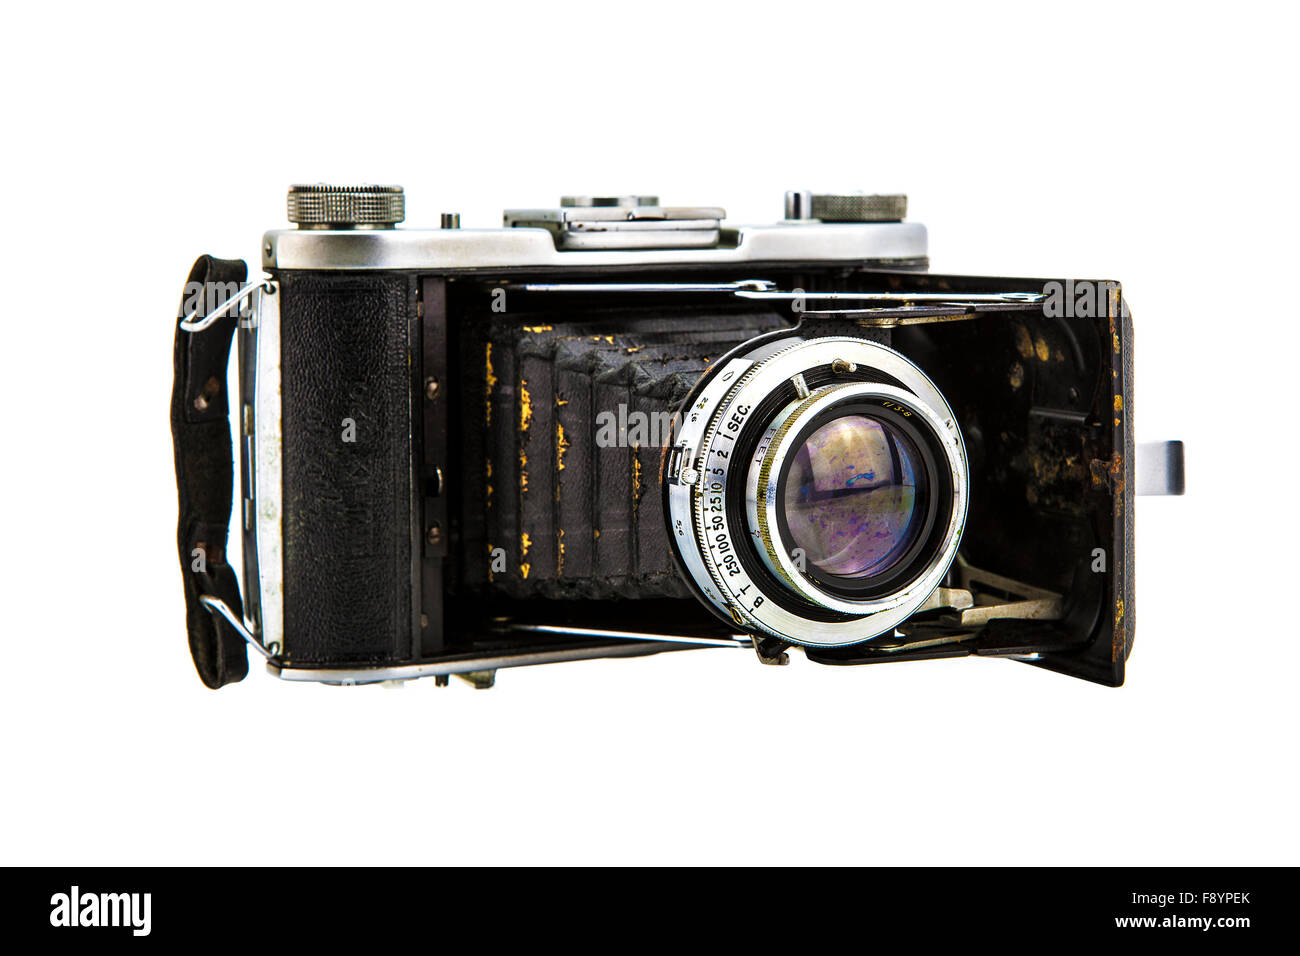 Old well worn vintage film camera on white background Stock Photo